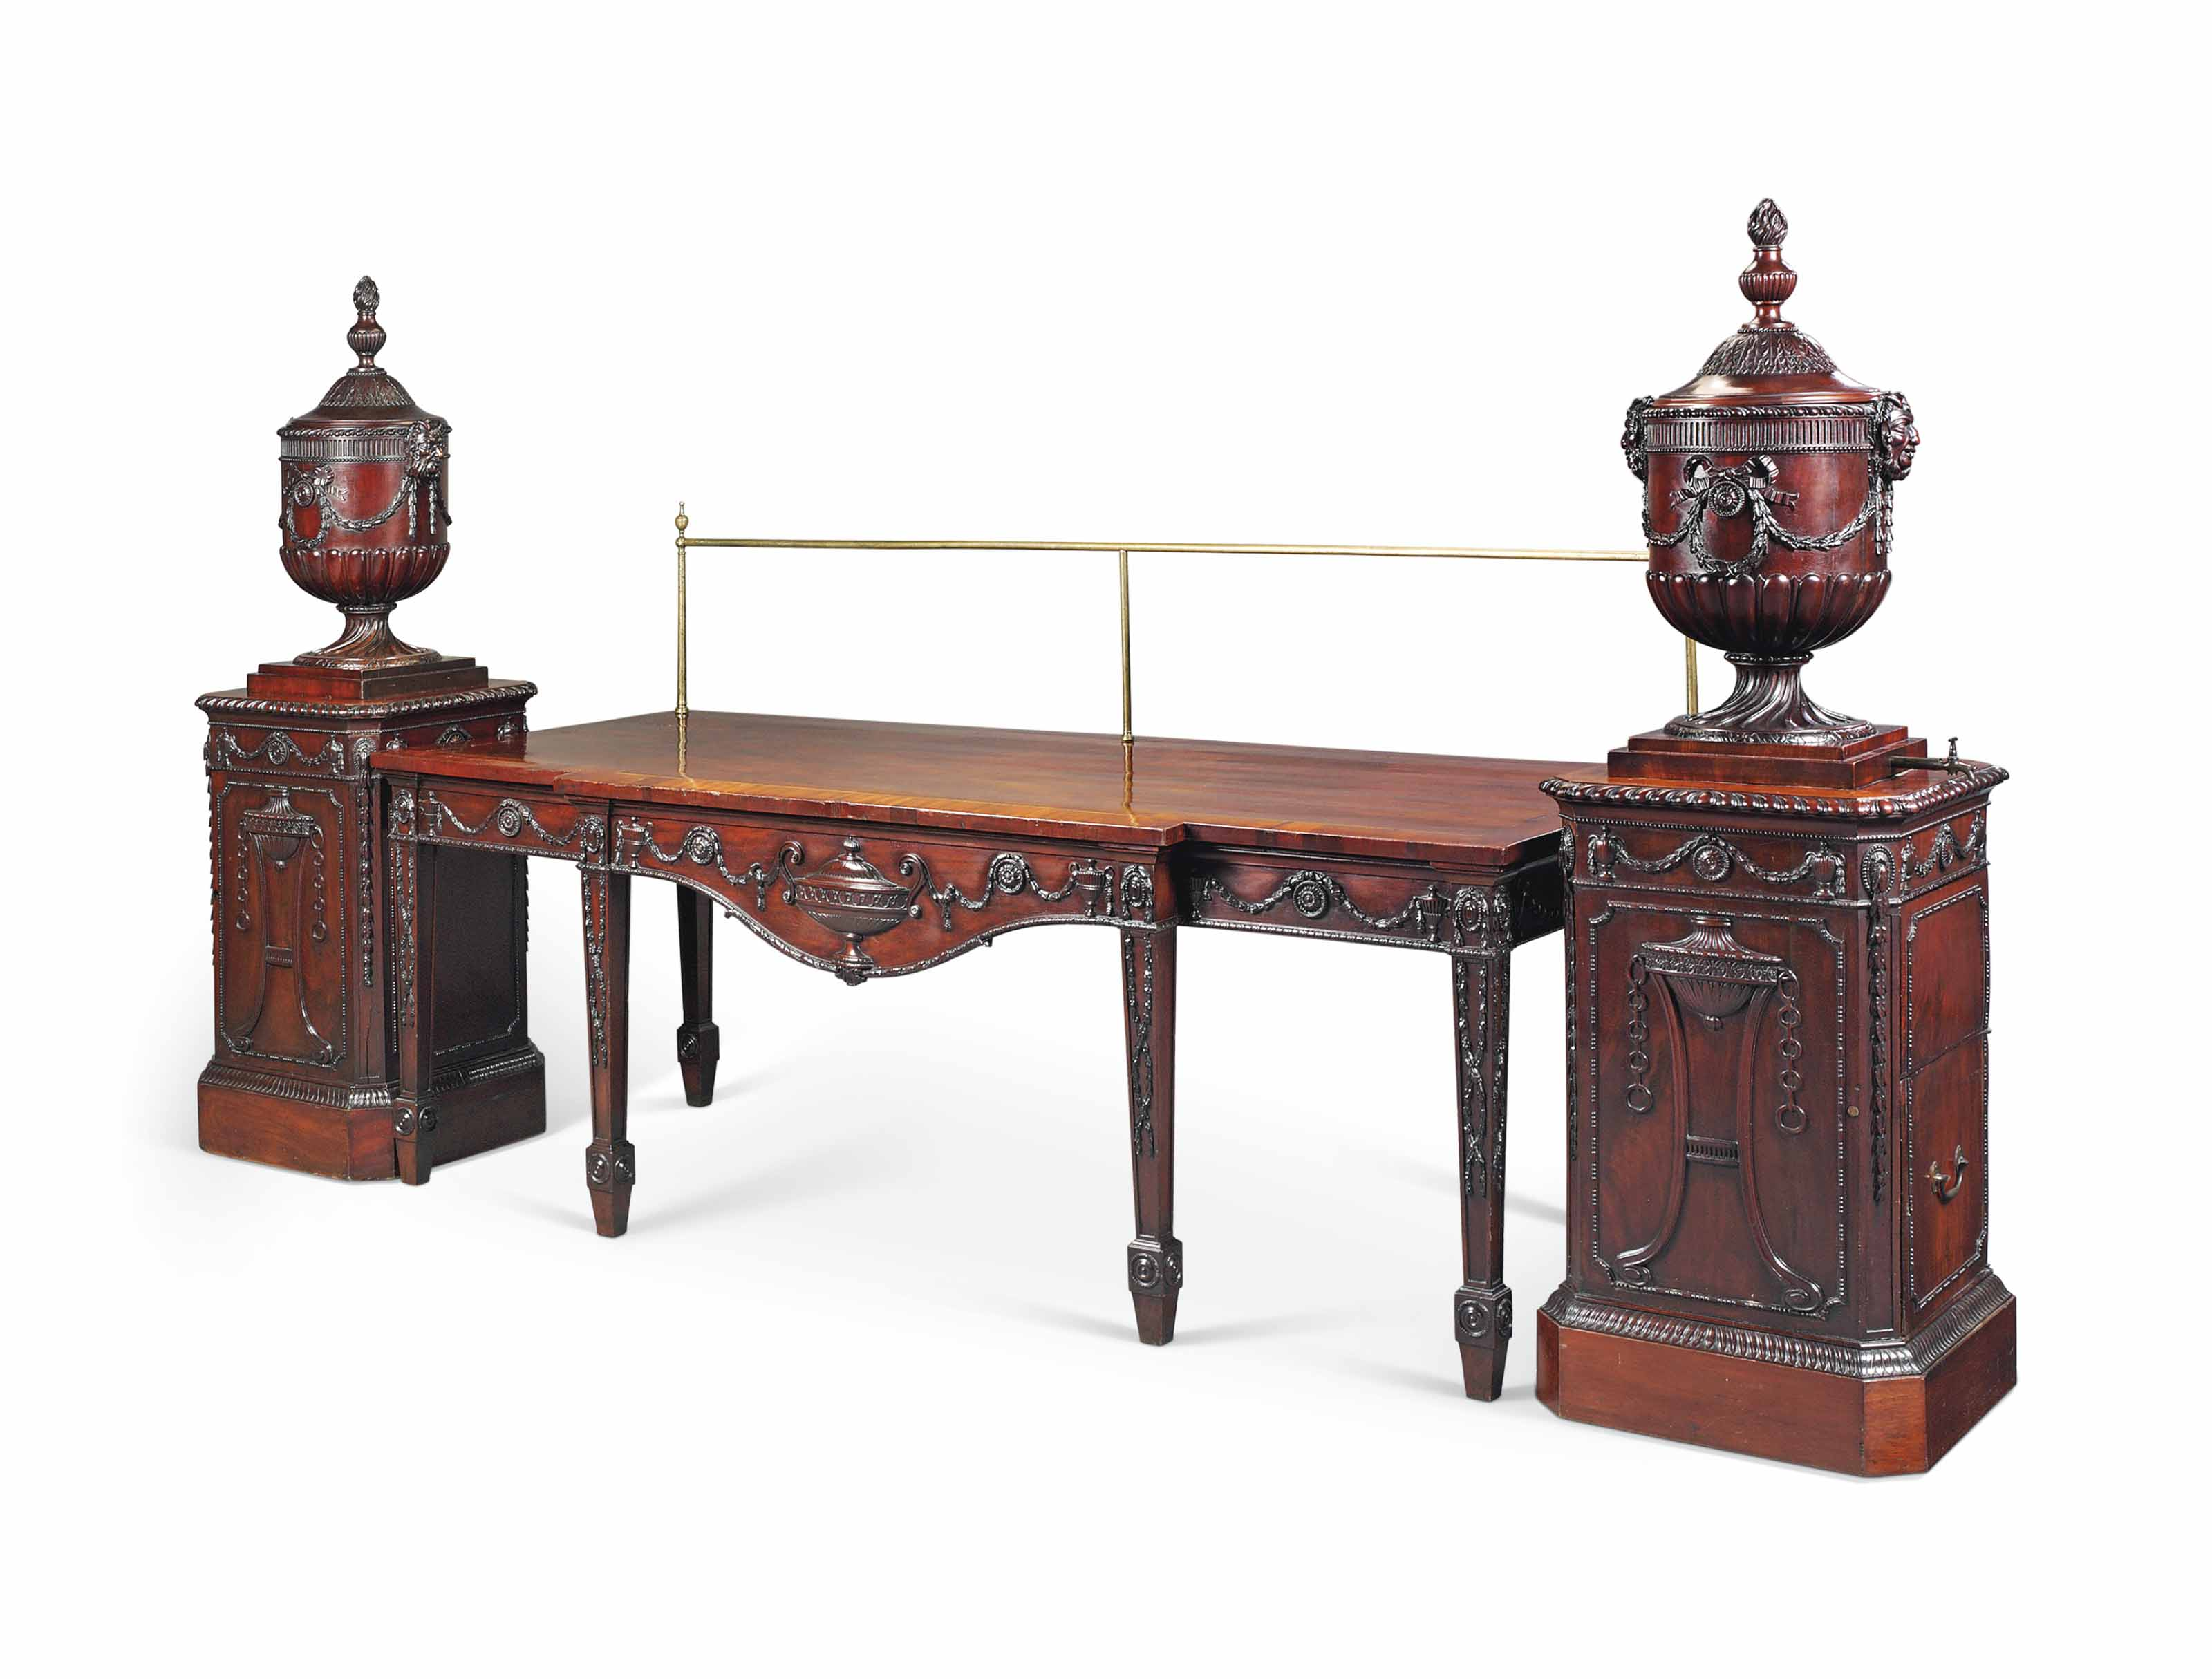 A GEORGE III MAHOGANY SERVING-TABLE AND PAIR OF URNS AND PEDESTALS EN SUITE